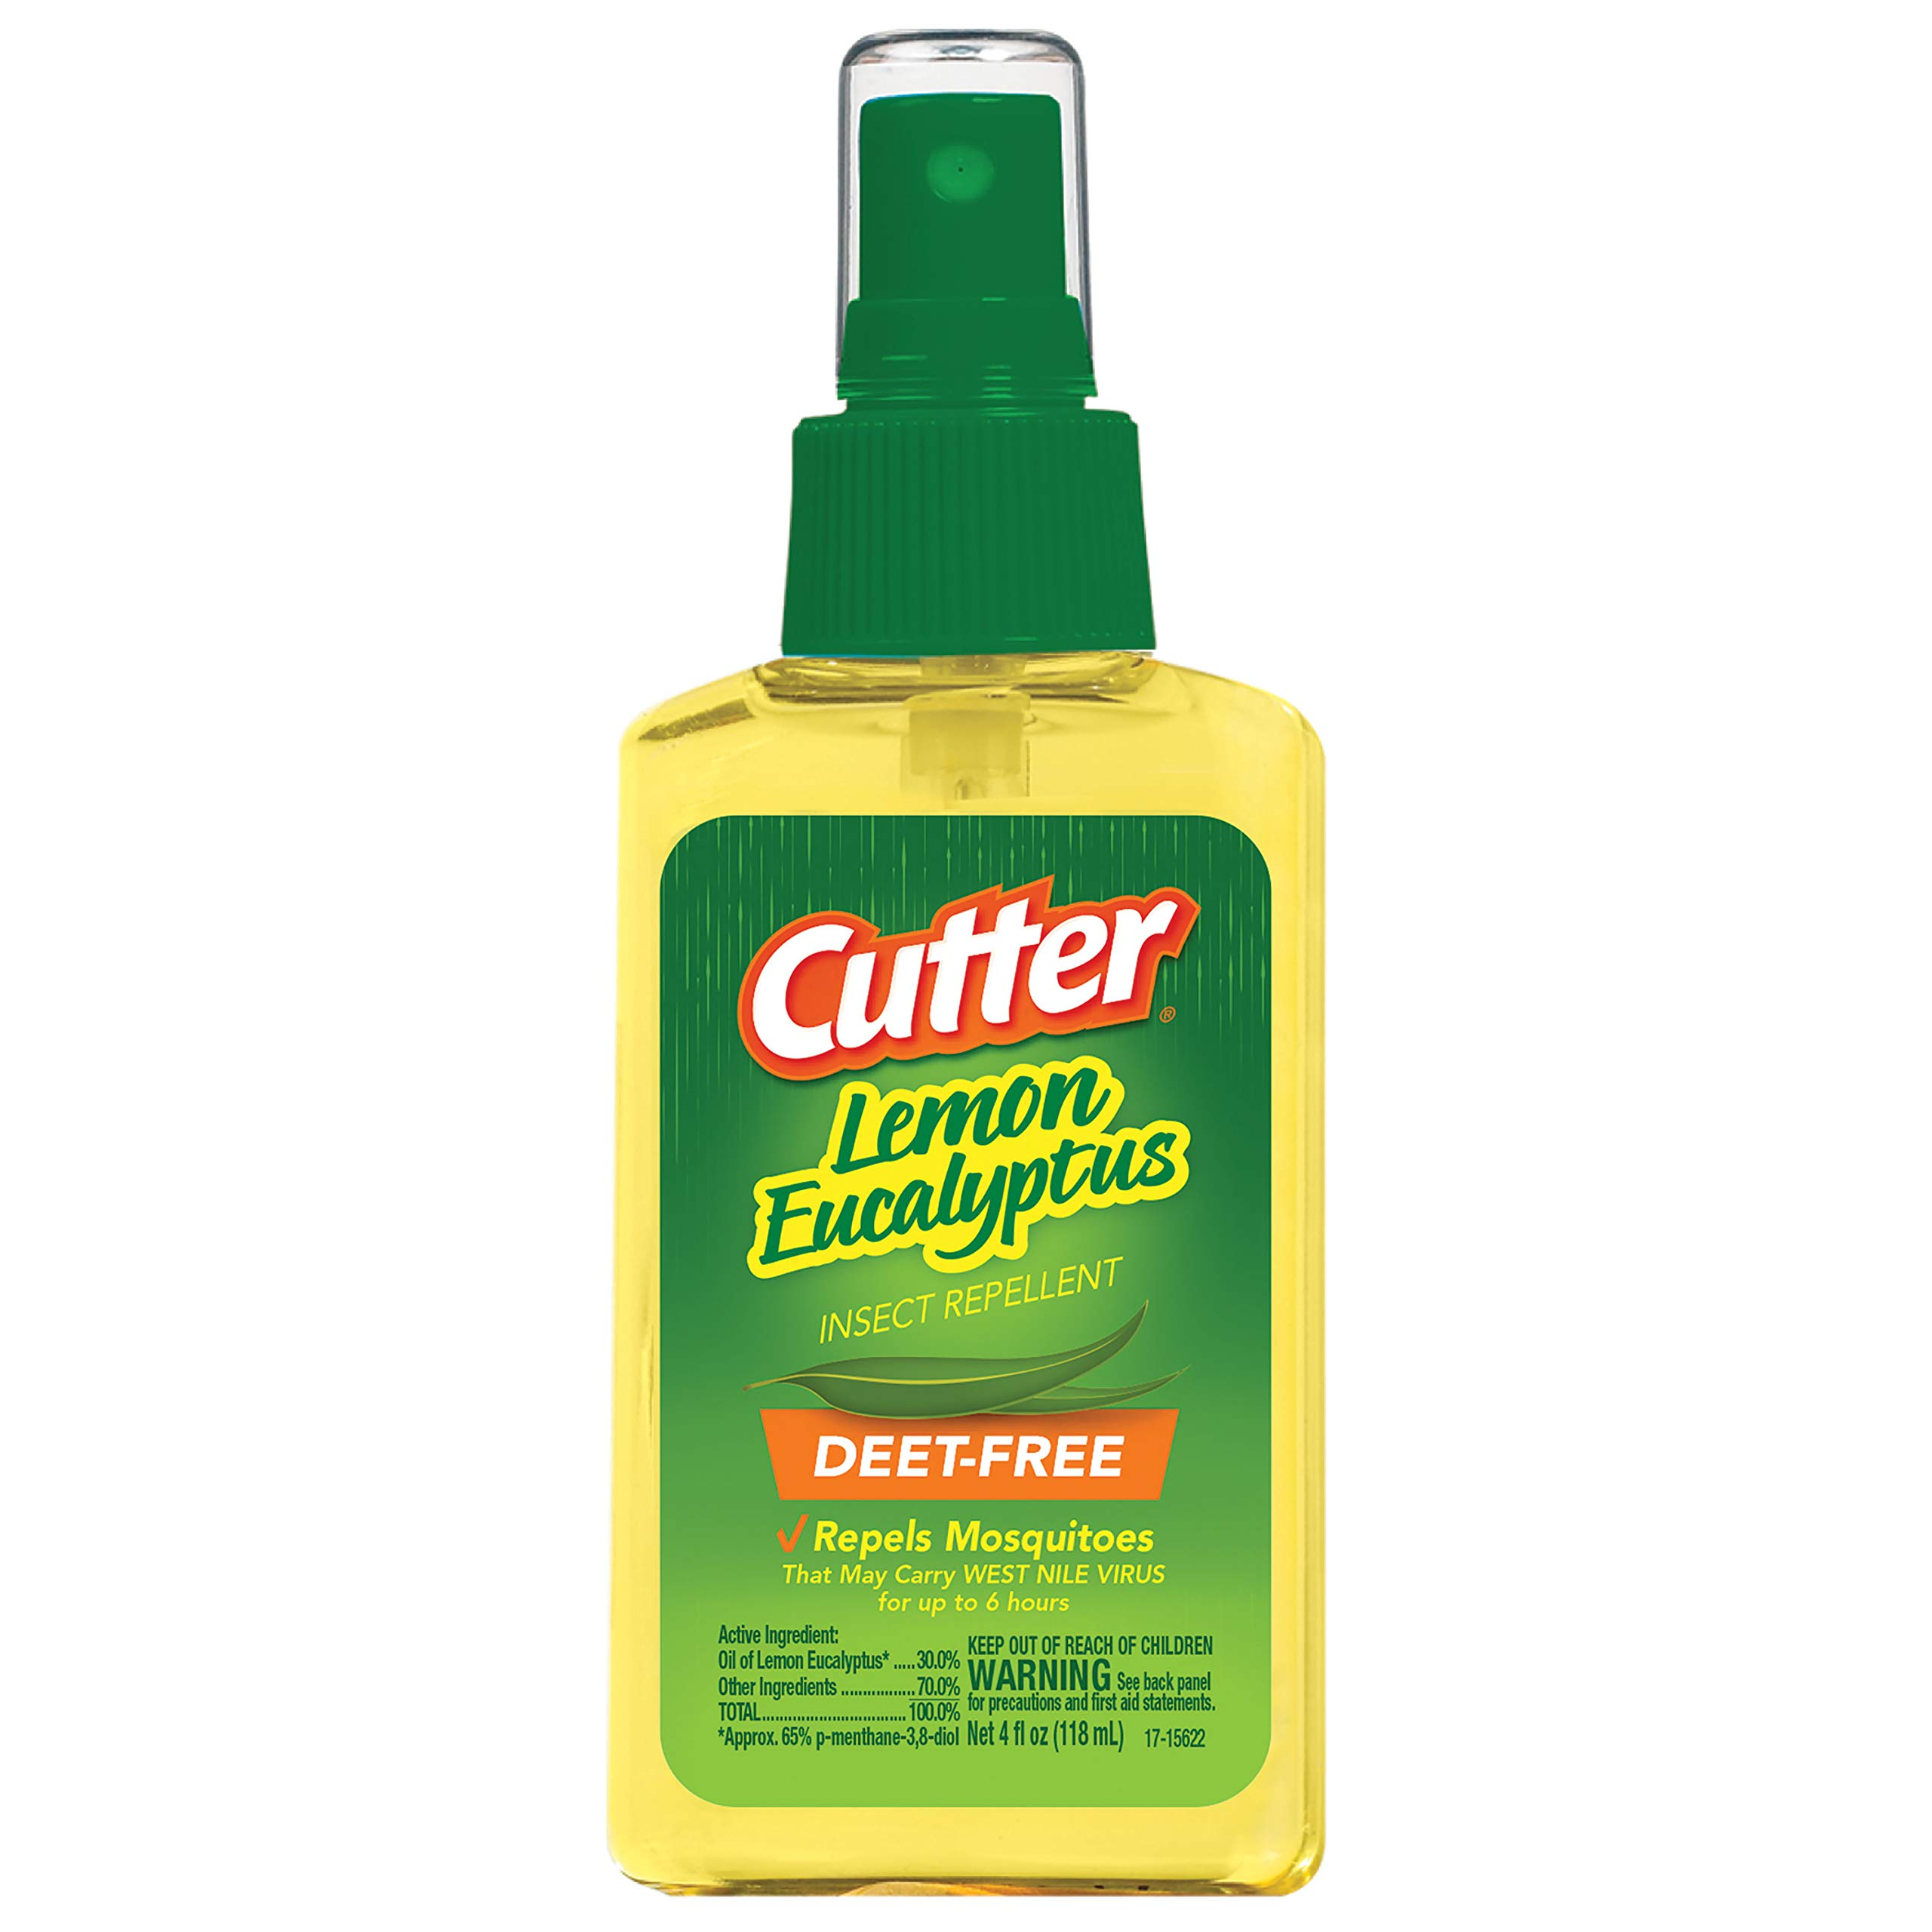 Cutter Lemon Eucalyptus Insect Repellent, Pump Spray, 4-Ounce